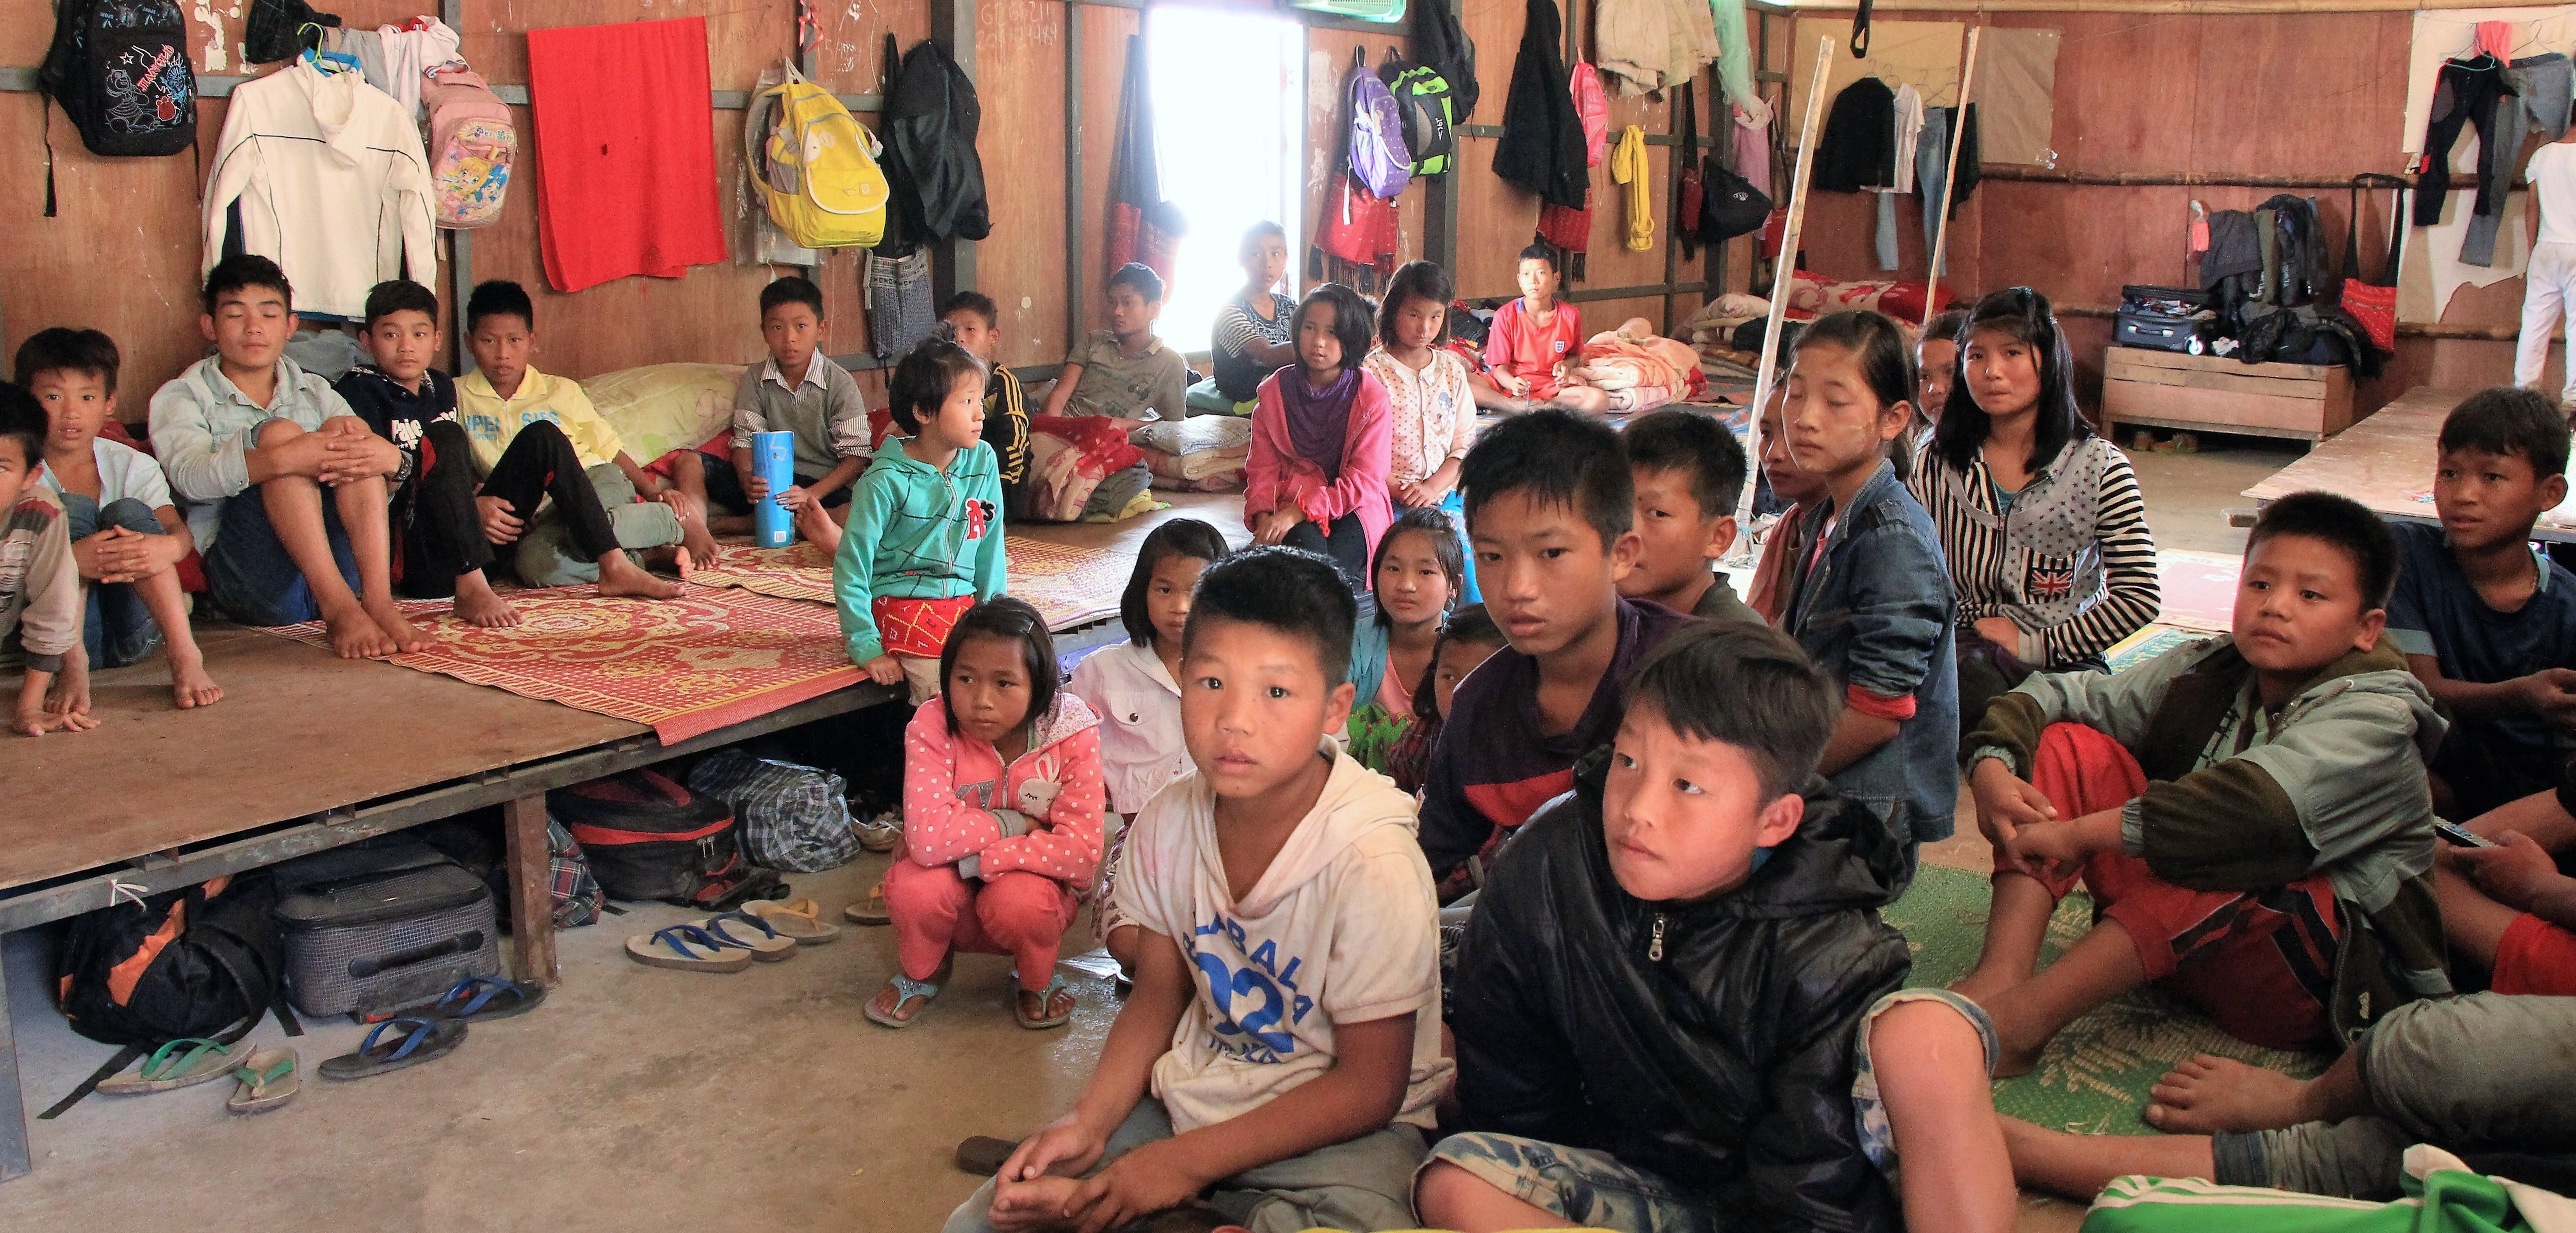 children in dorm